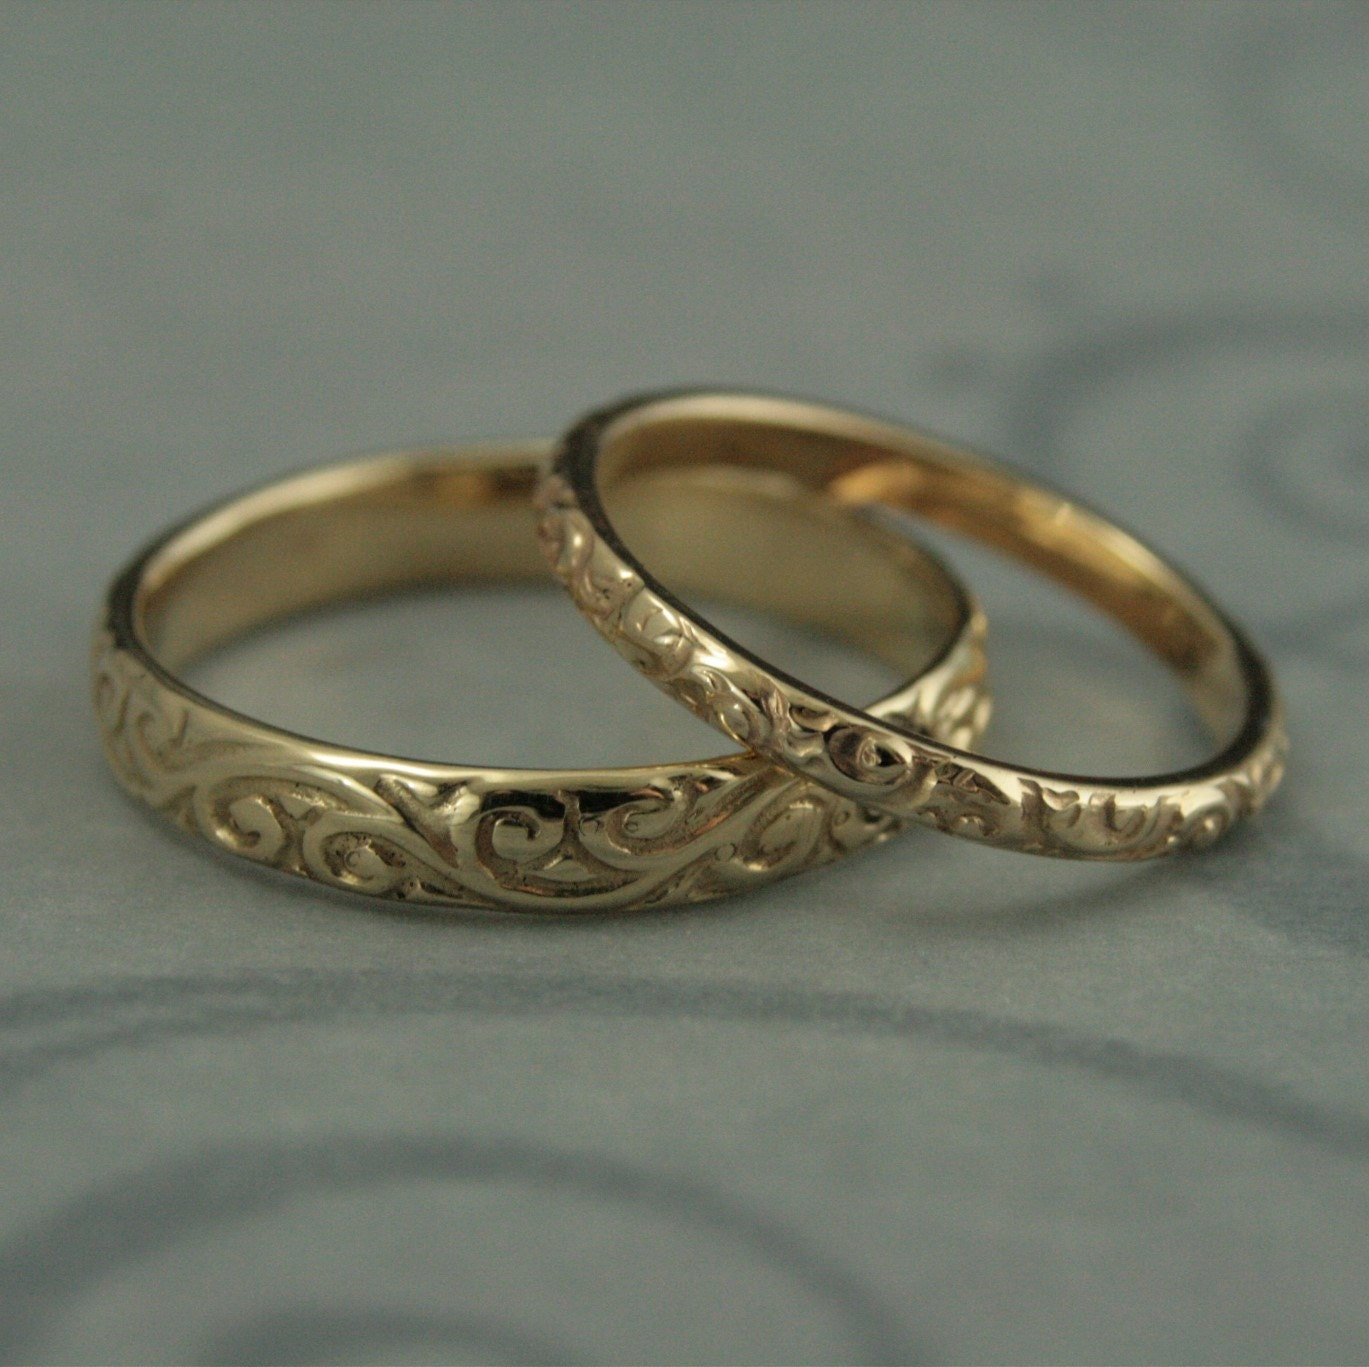 Patterned Wedding Band SetVintage Style Wedding RingsHis and